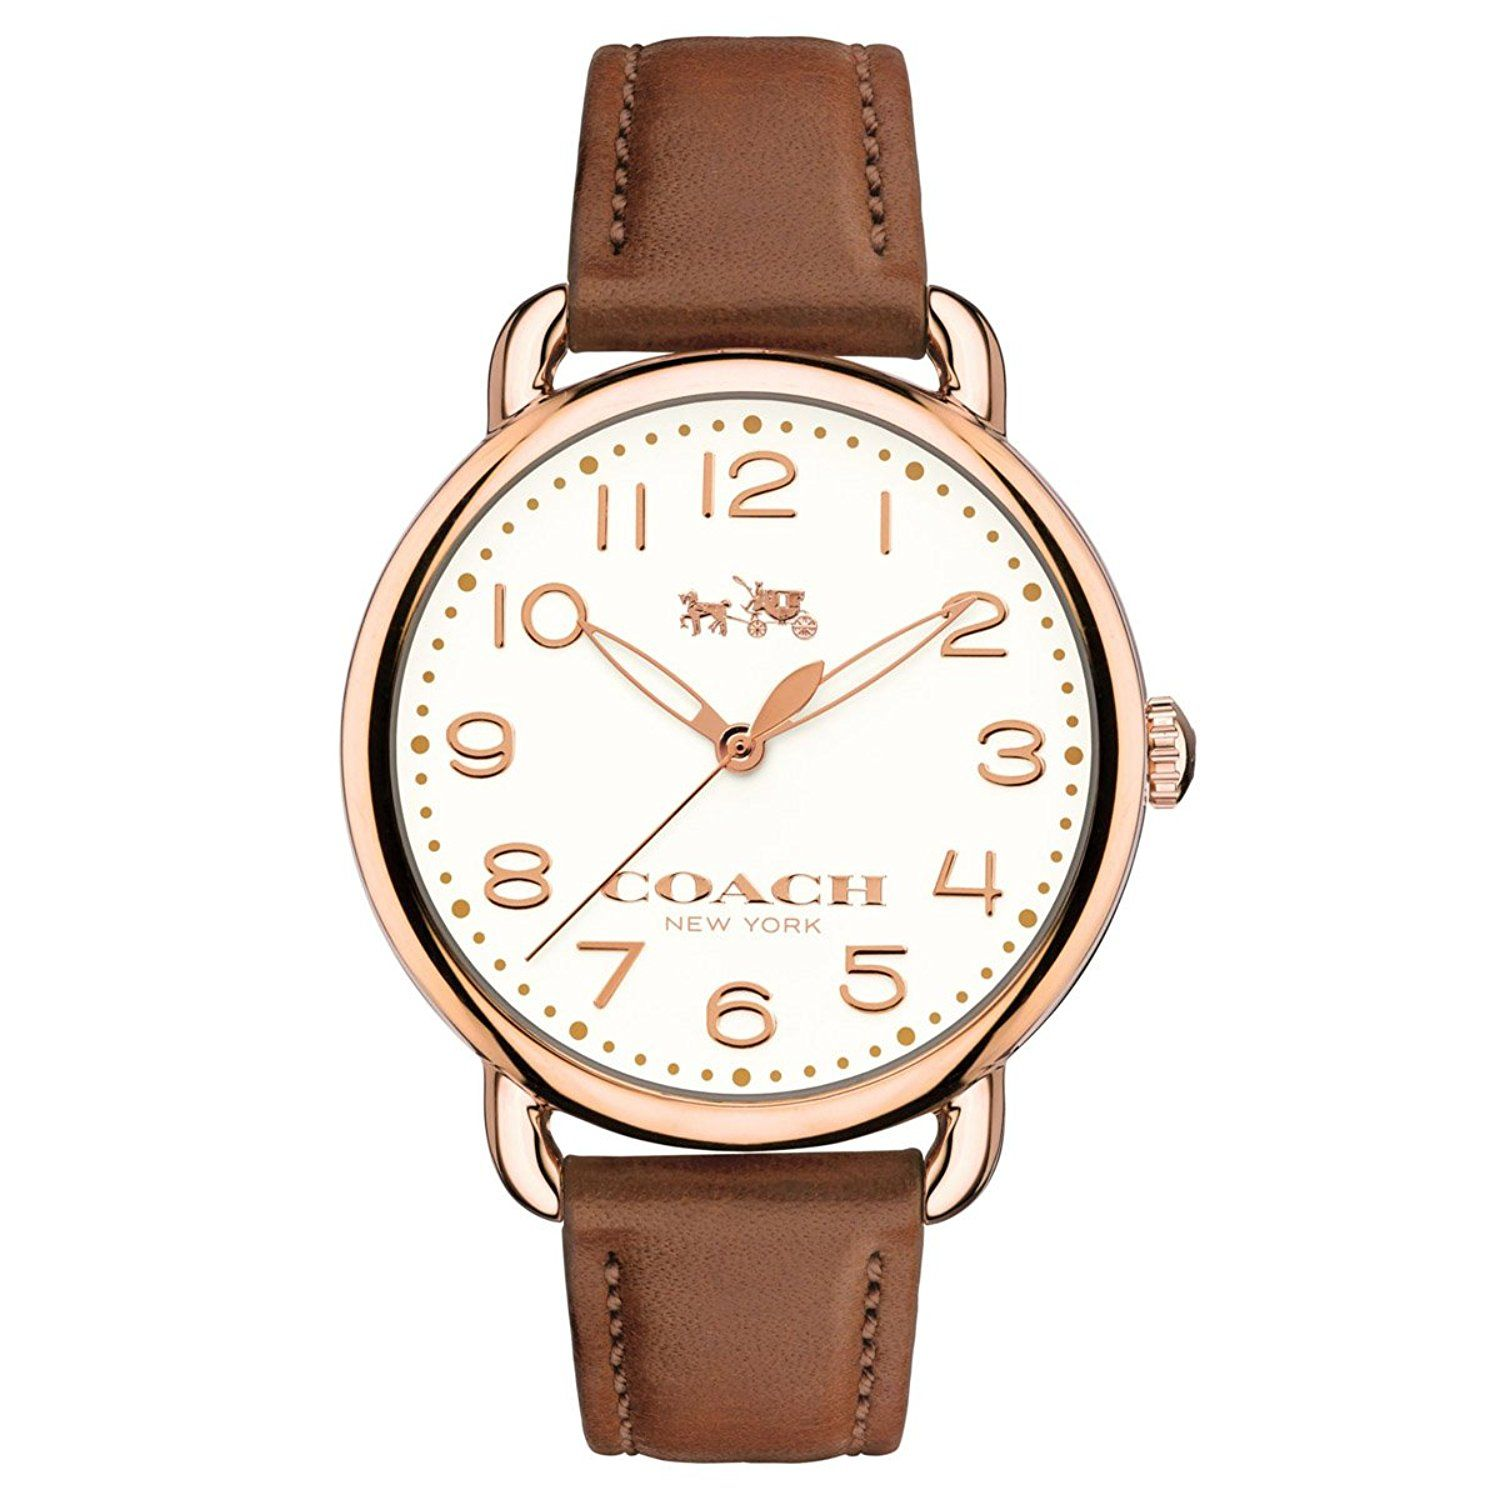 608cb5d82 COACH Women's Delancey 36mm Leather Strap Watch Chalk/Russet Watch --  Additional details at the pin image, click it